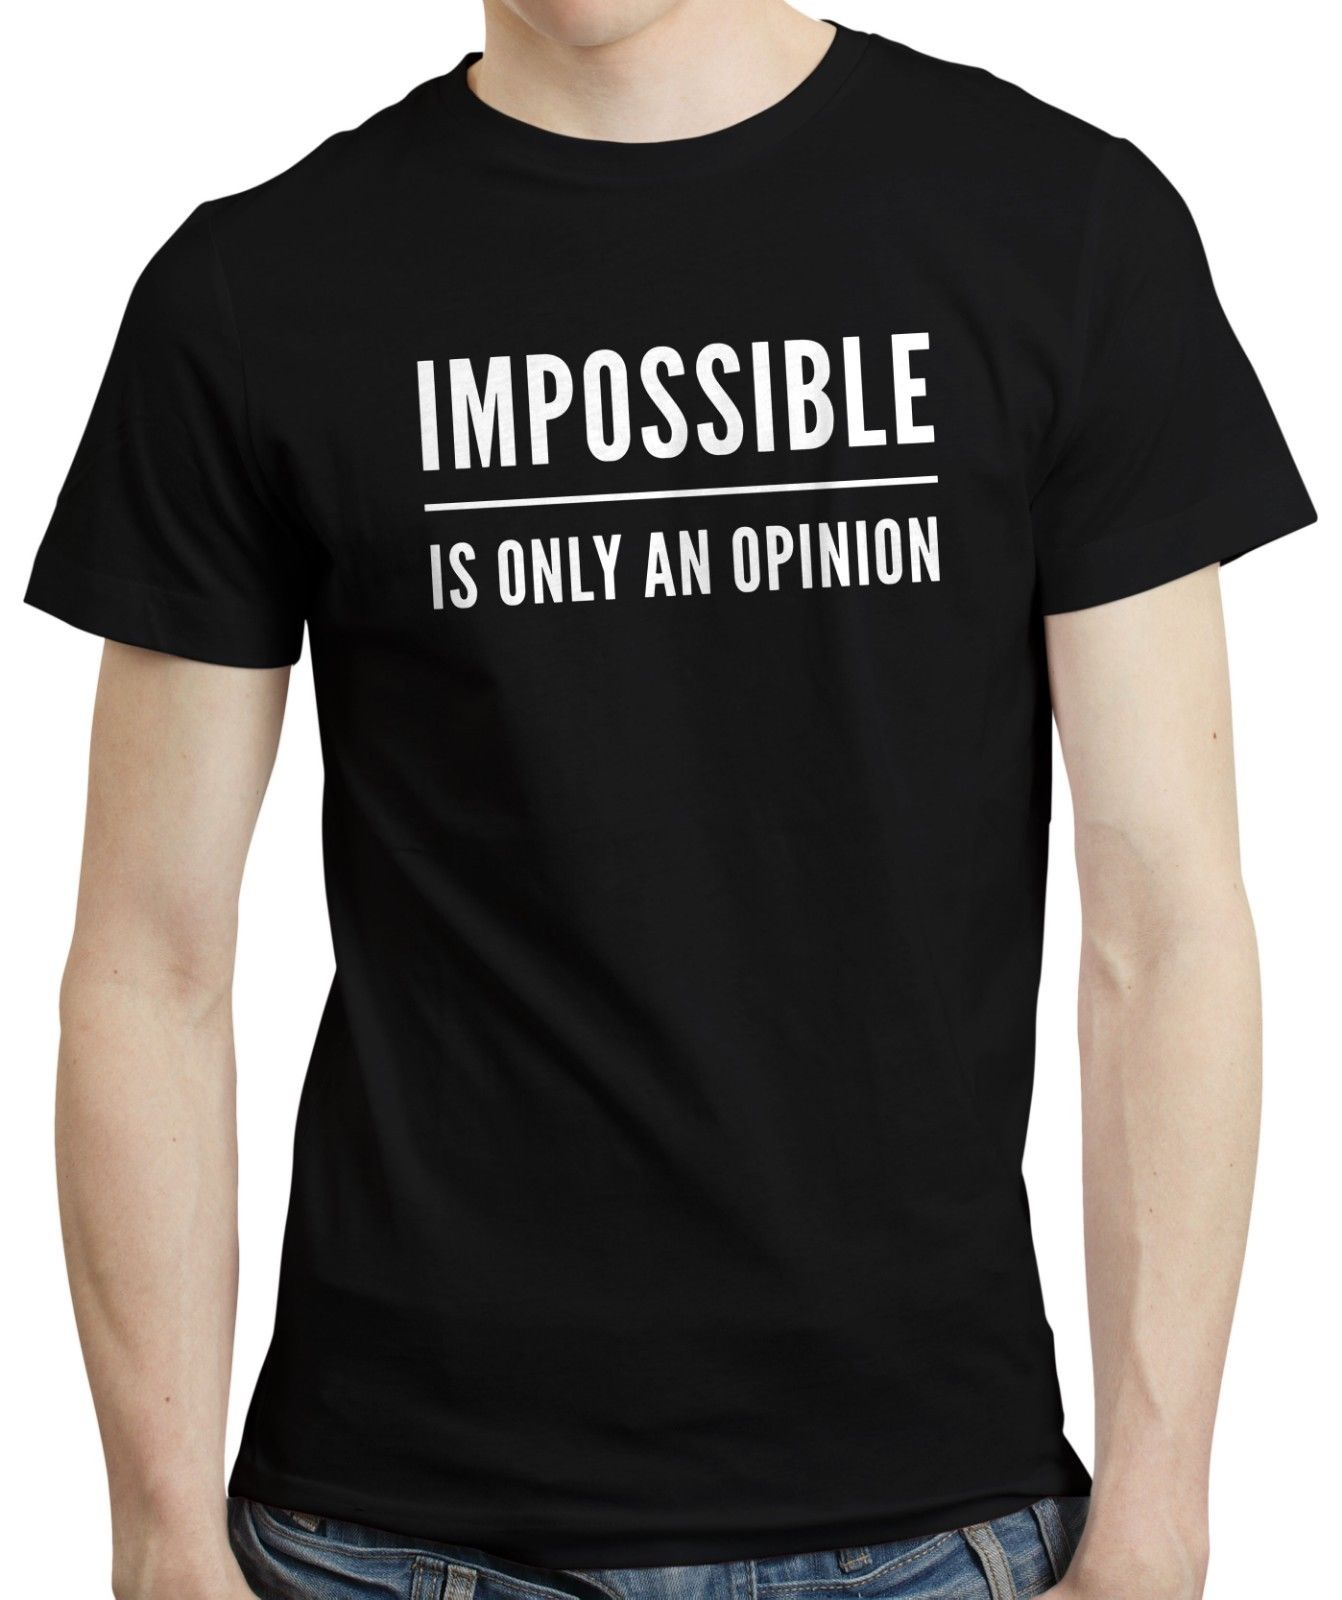 Impossible Is Only An Opinion Motivational Quote Gym Fitness Challenge T-shirt